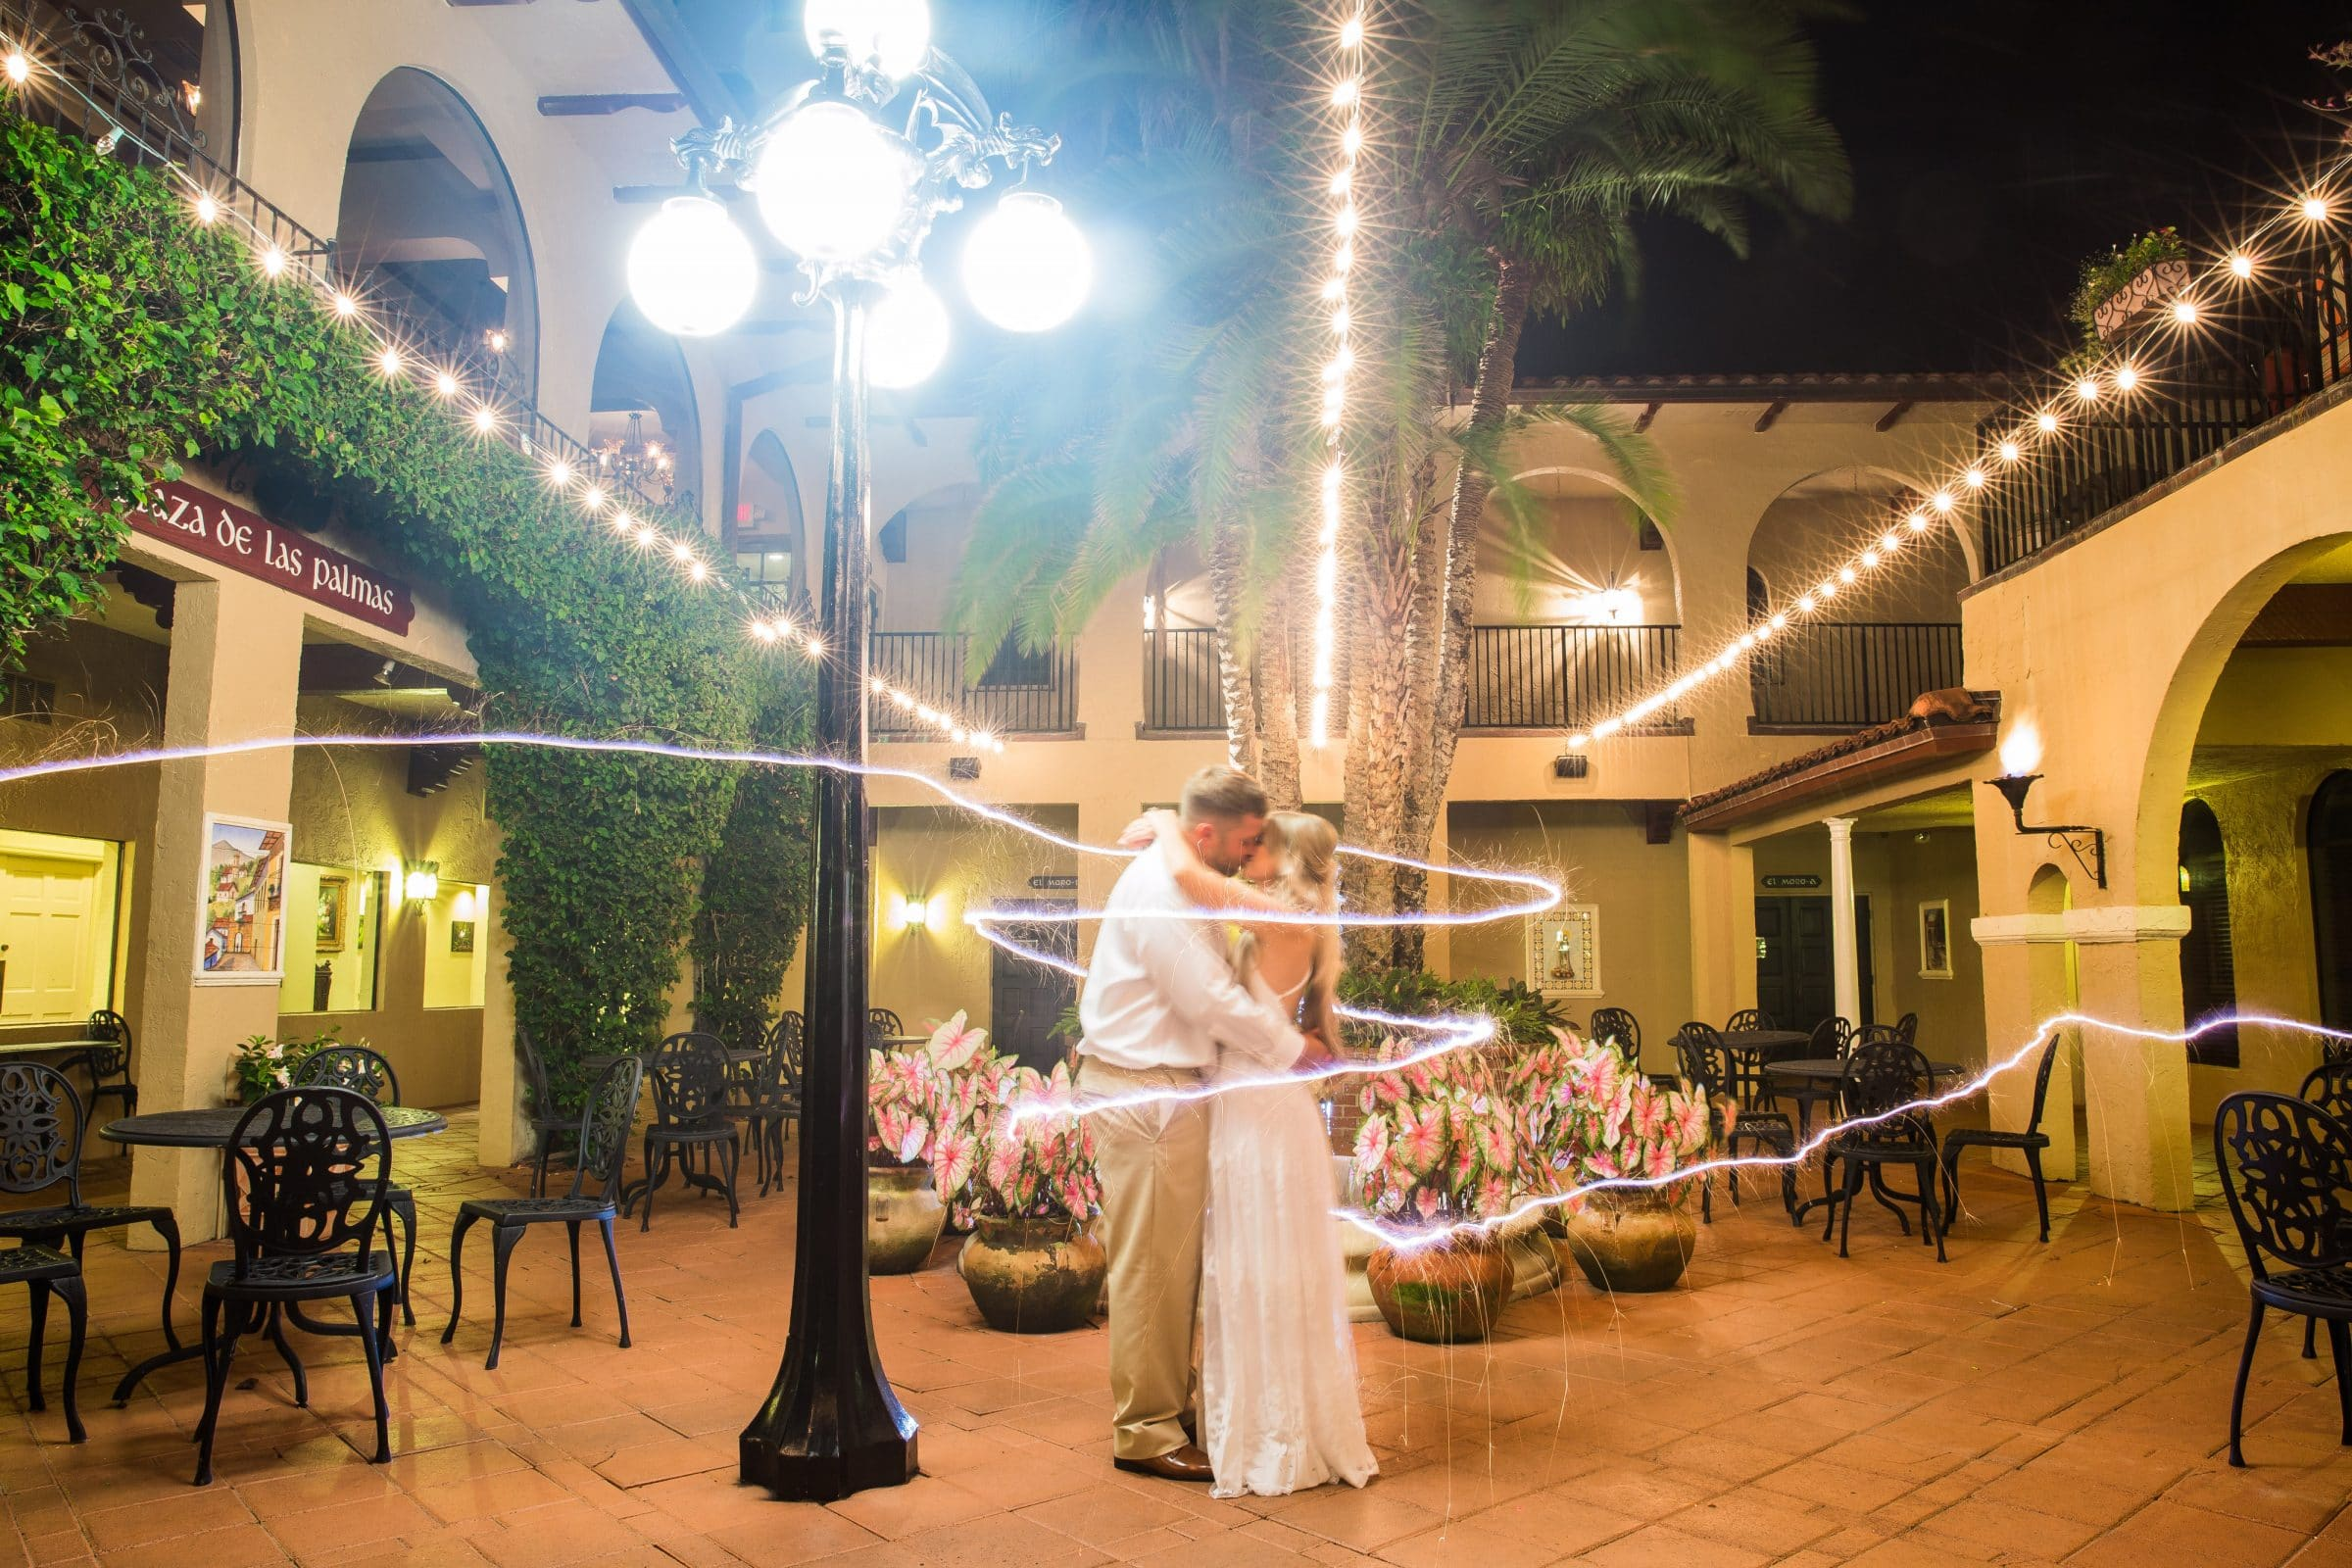 Bride and groom in Plaza de las Palmas with ribbon of light surrounding them